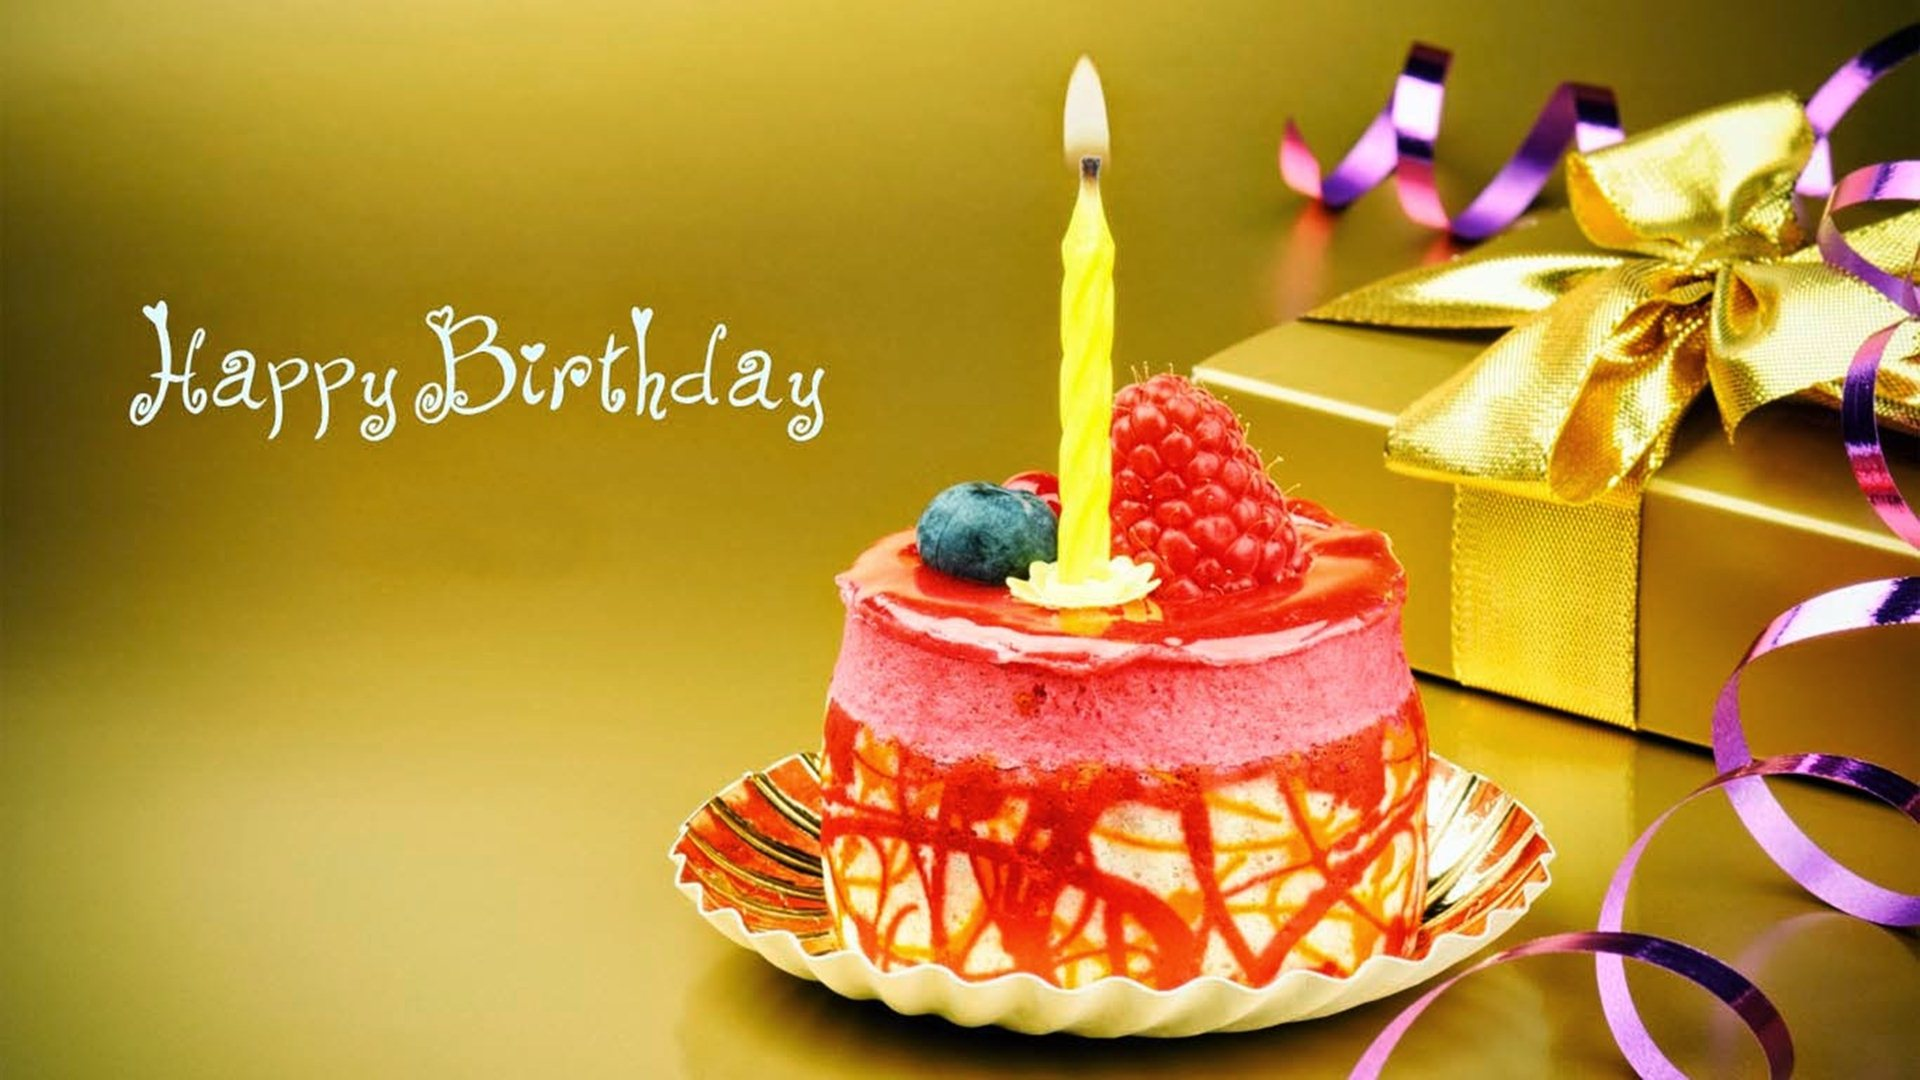 birthday wishes pics hd ; birthday-wishes-in-hd-images-birthday-wishes-images-hd6